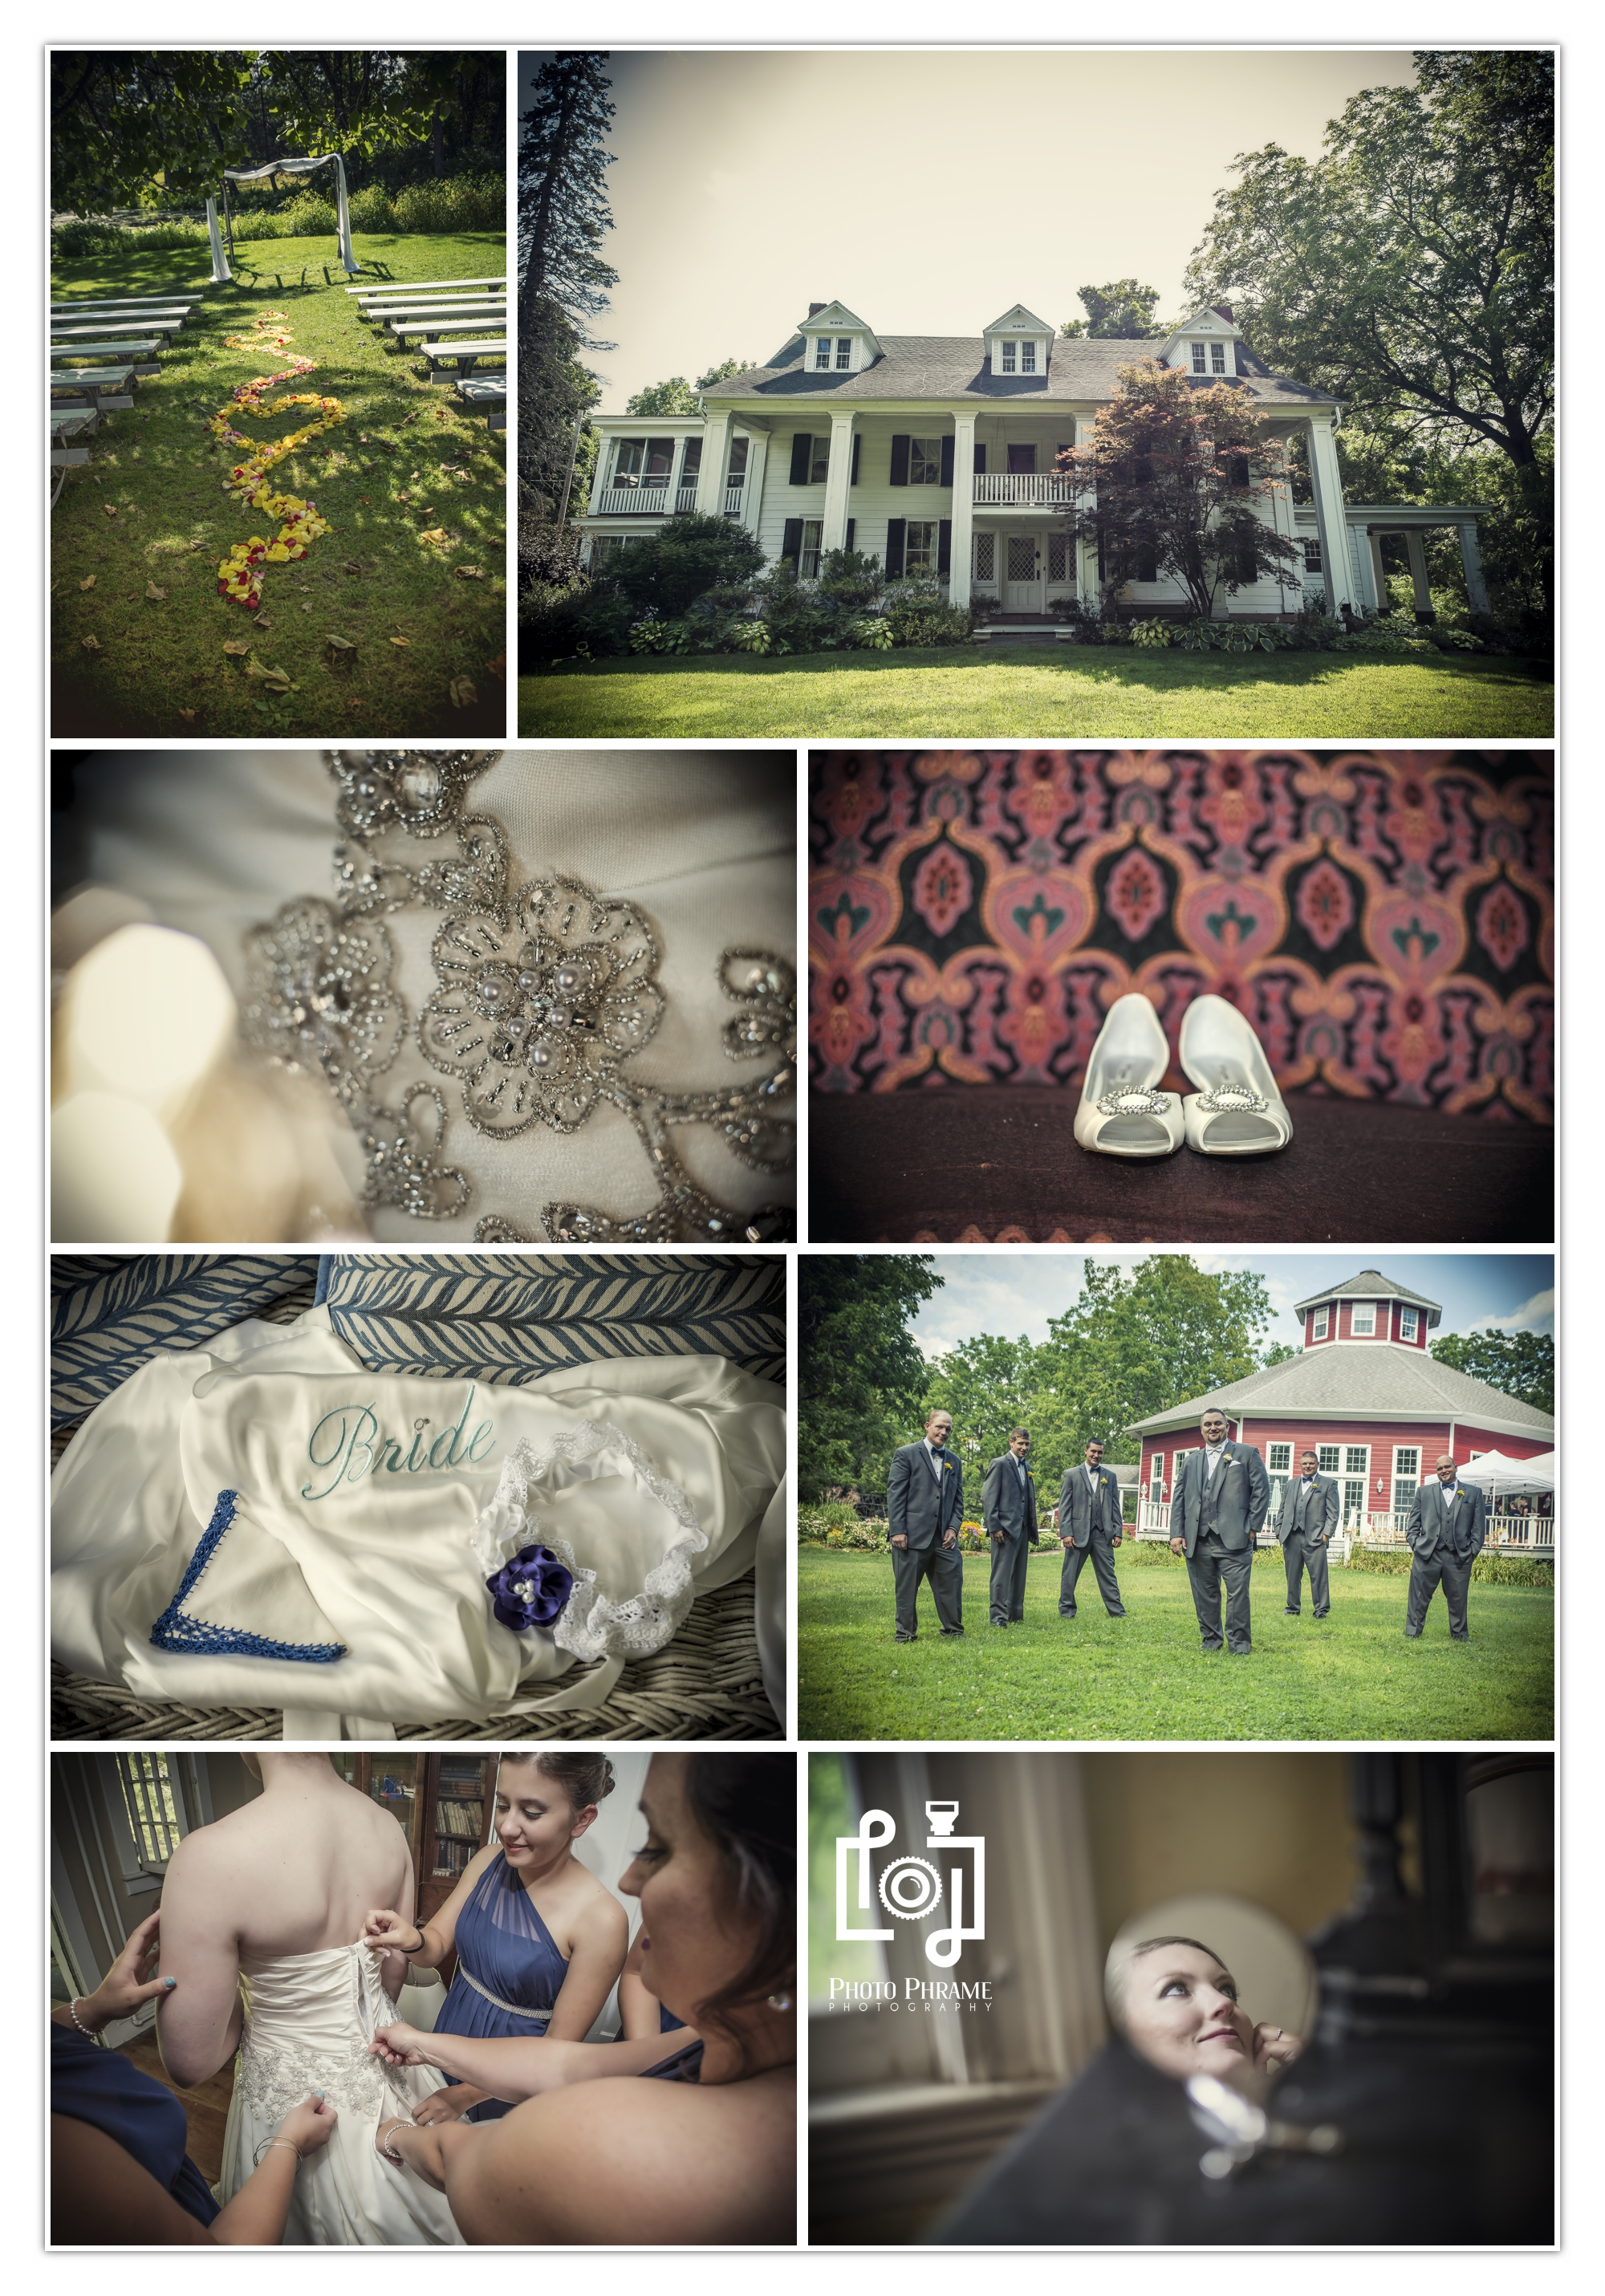 Appel Inn, Albany, NY Wedding Photography